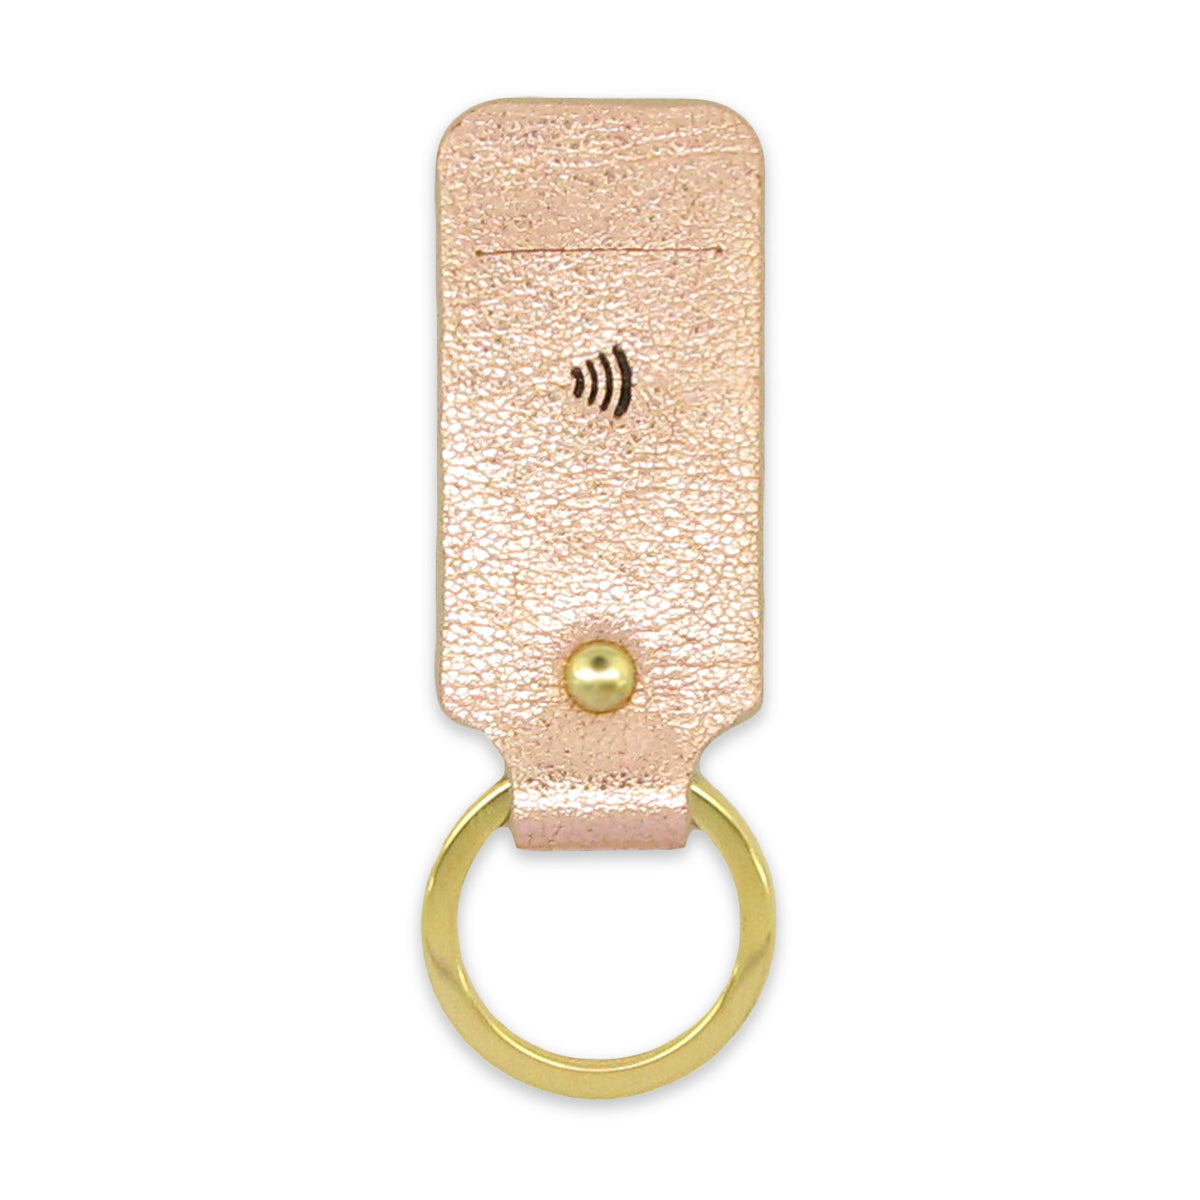 Leather Contactless Payment Key Fob - Rose Gold